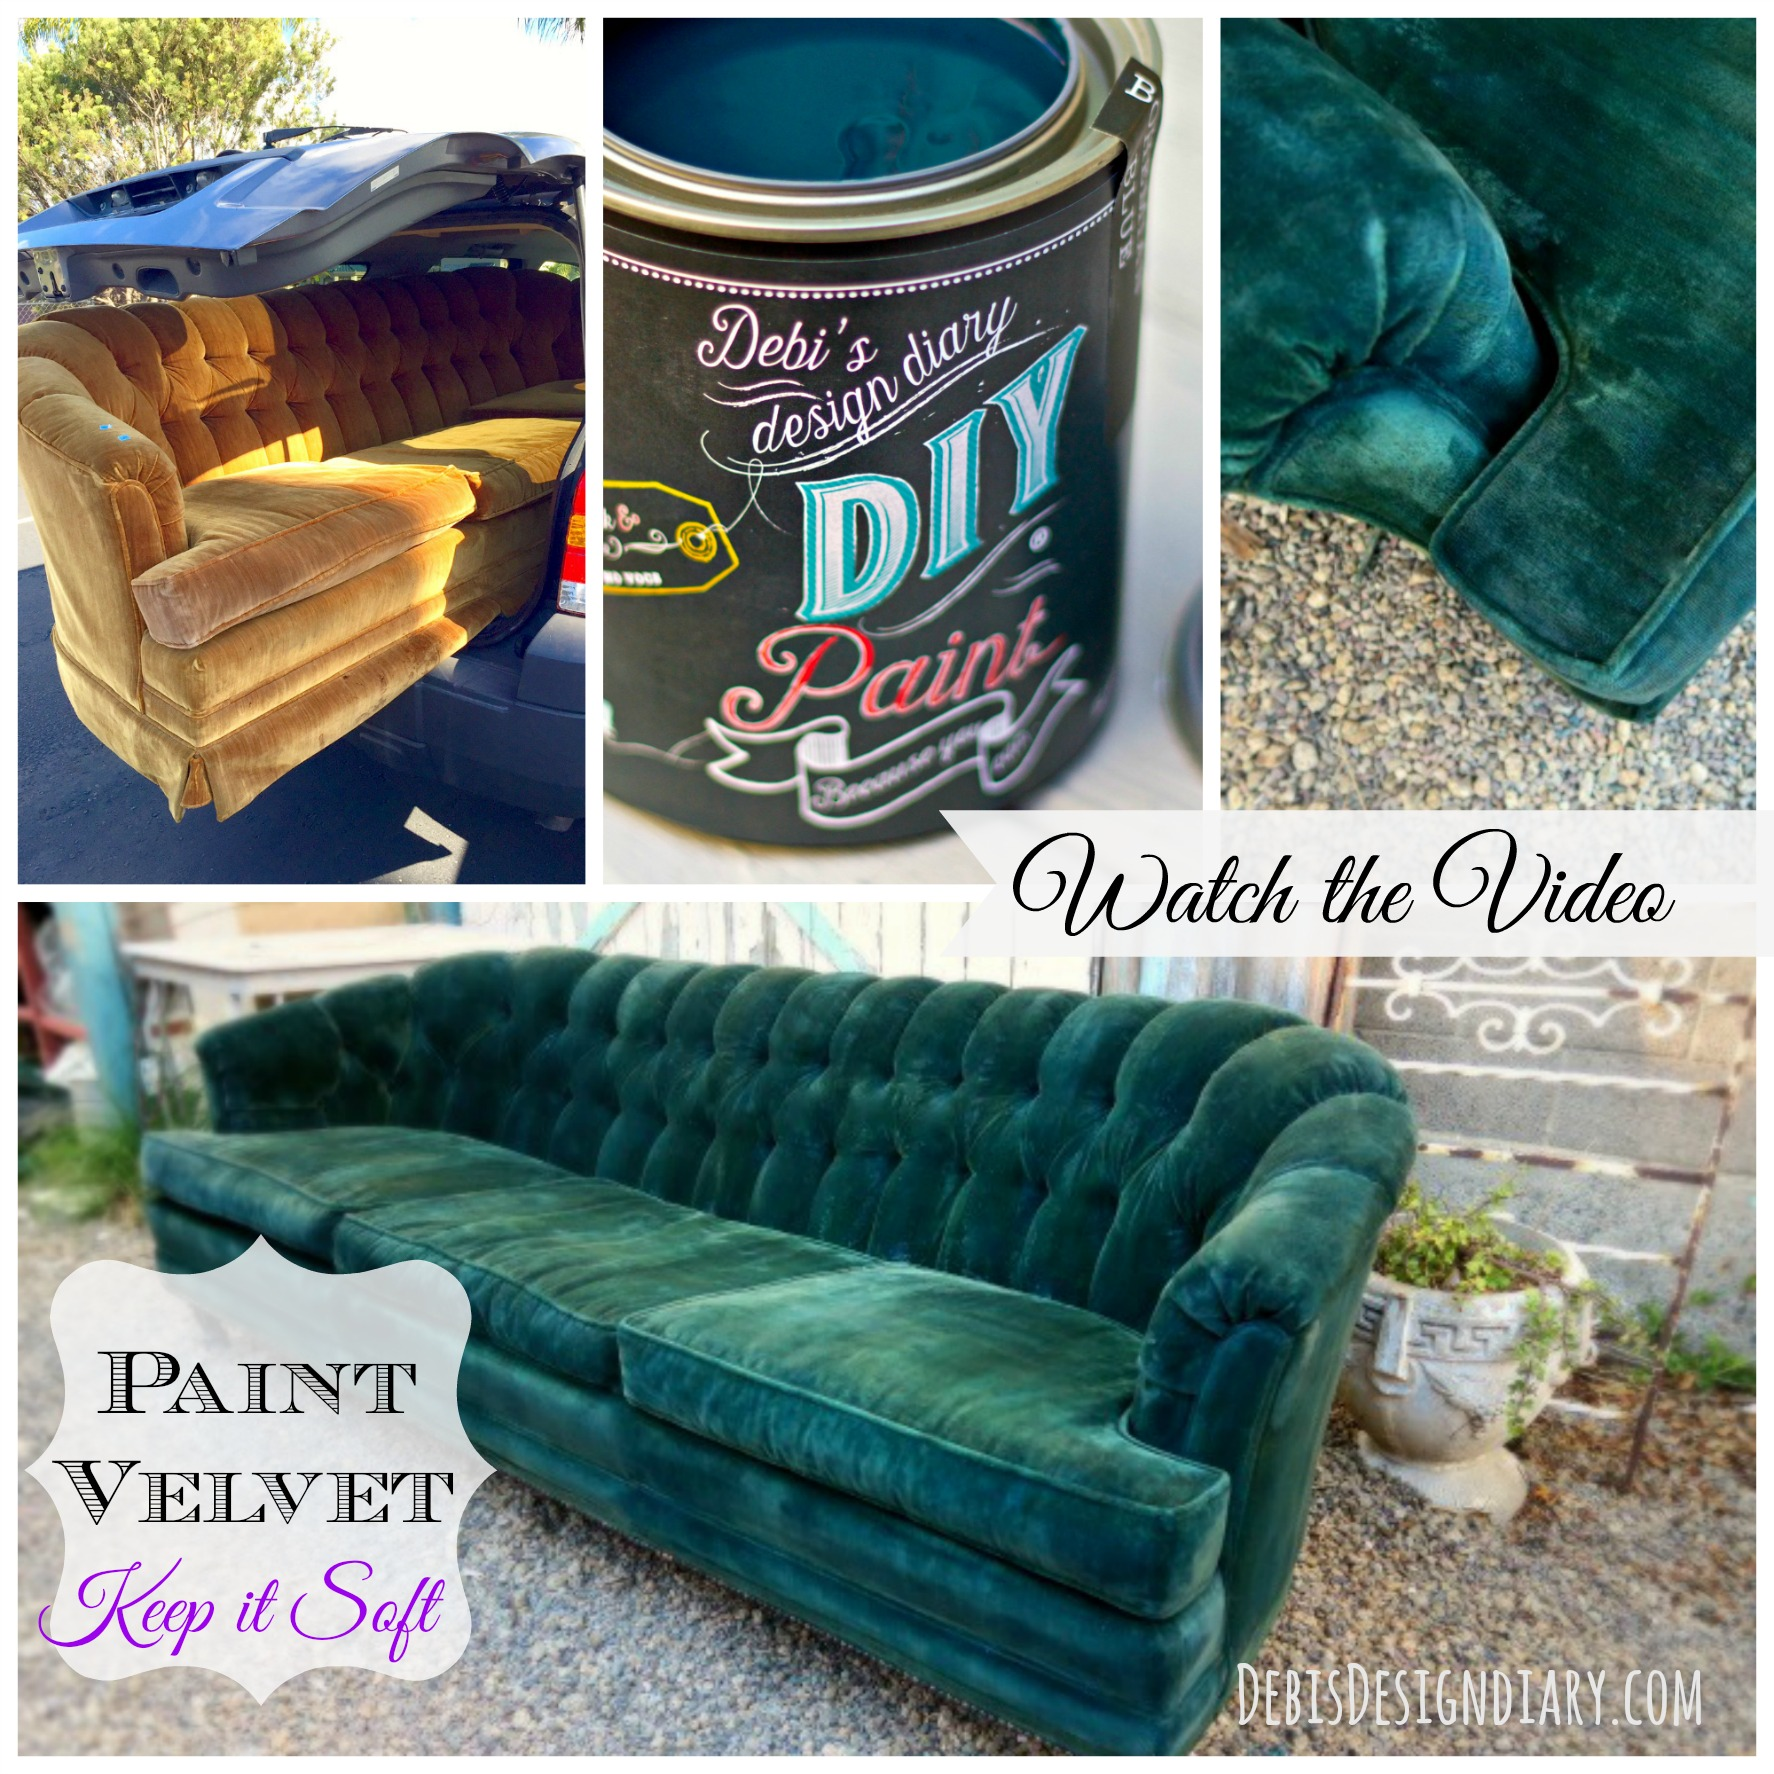 How to repaint an old velvet sofa keeping the texture